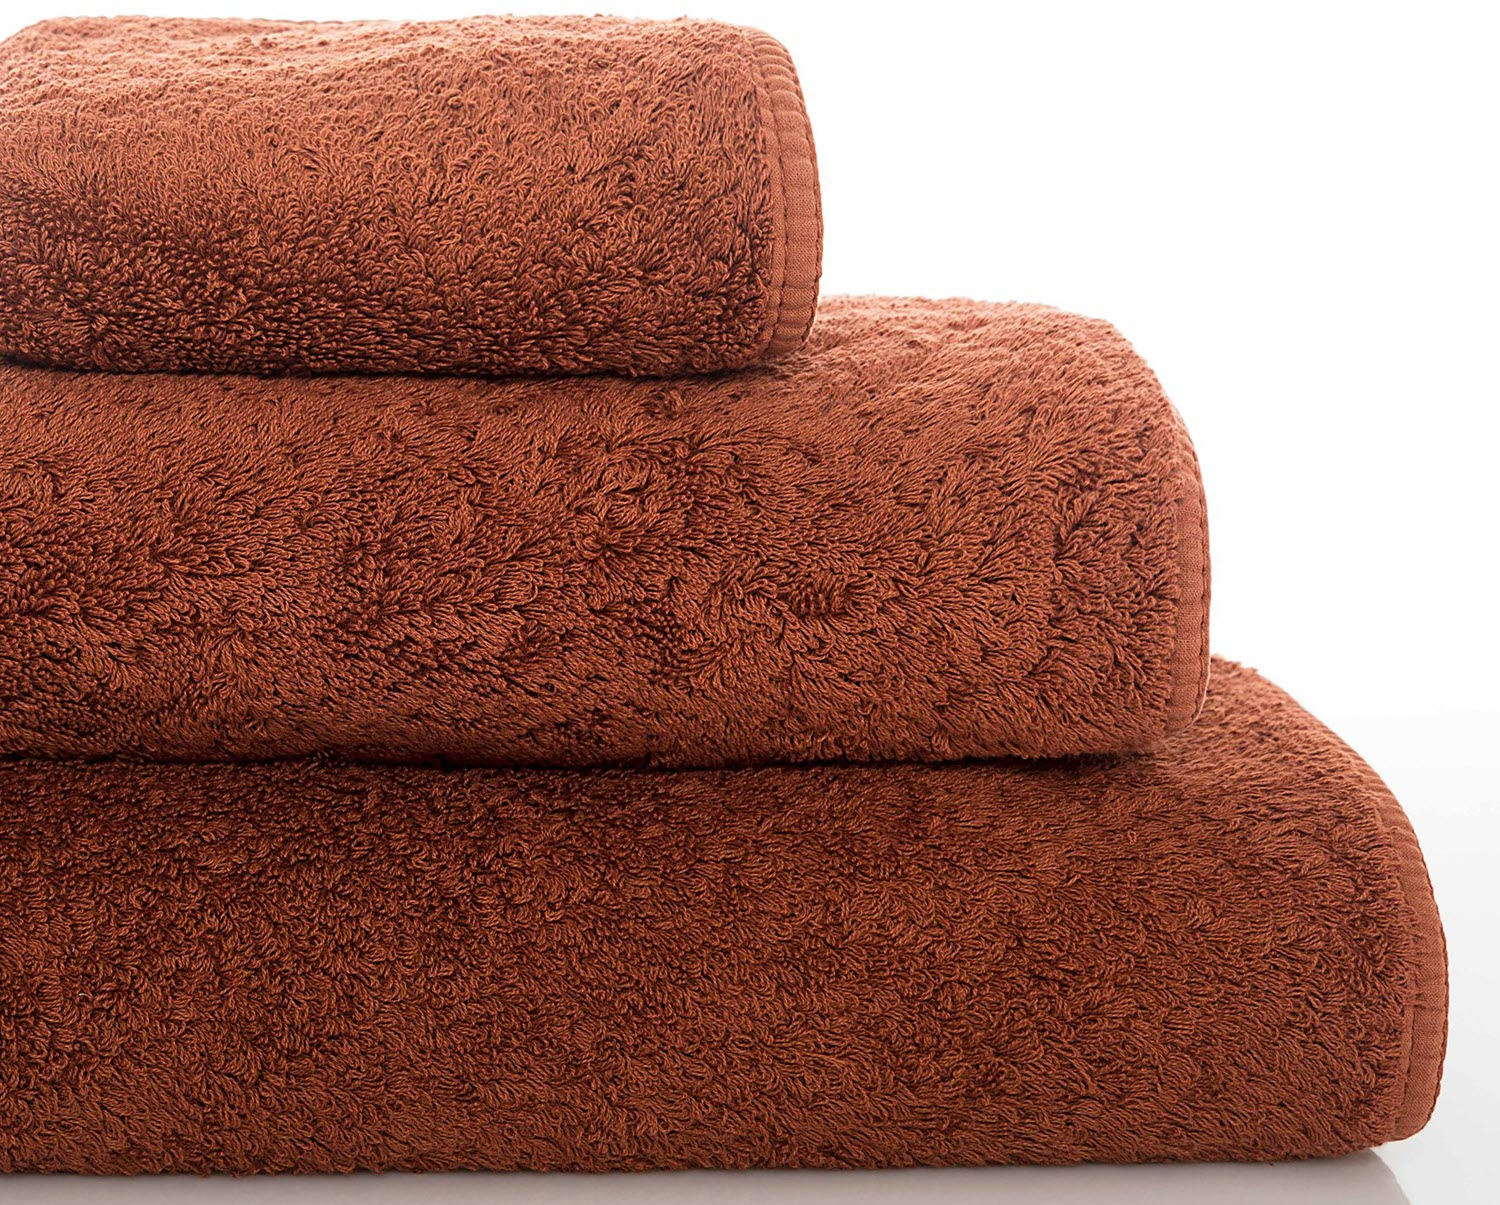 Upgrade His Towel Game with a Graccioza Long Double Loop towels